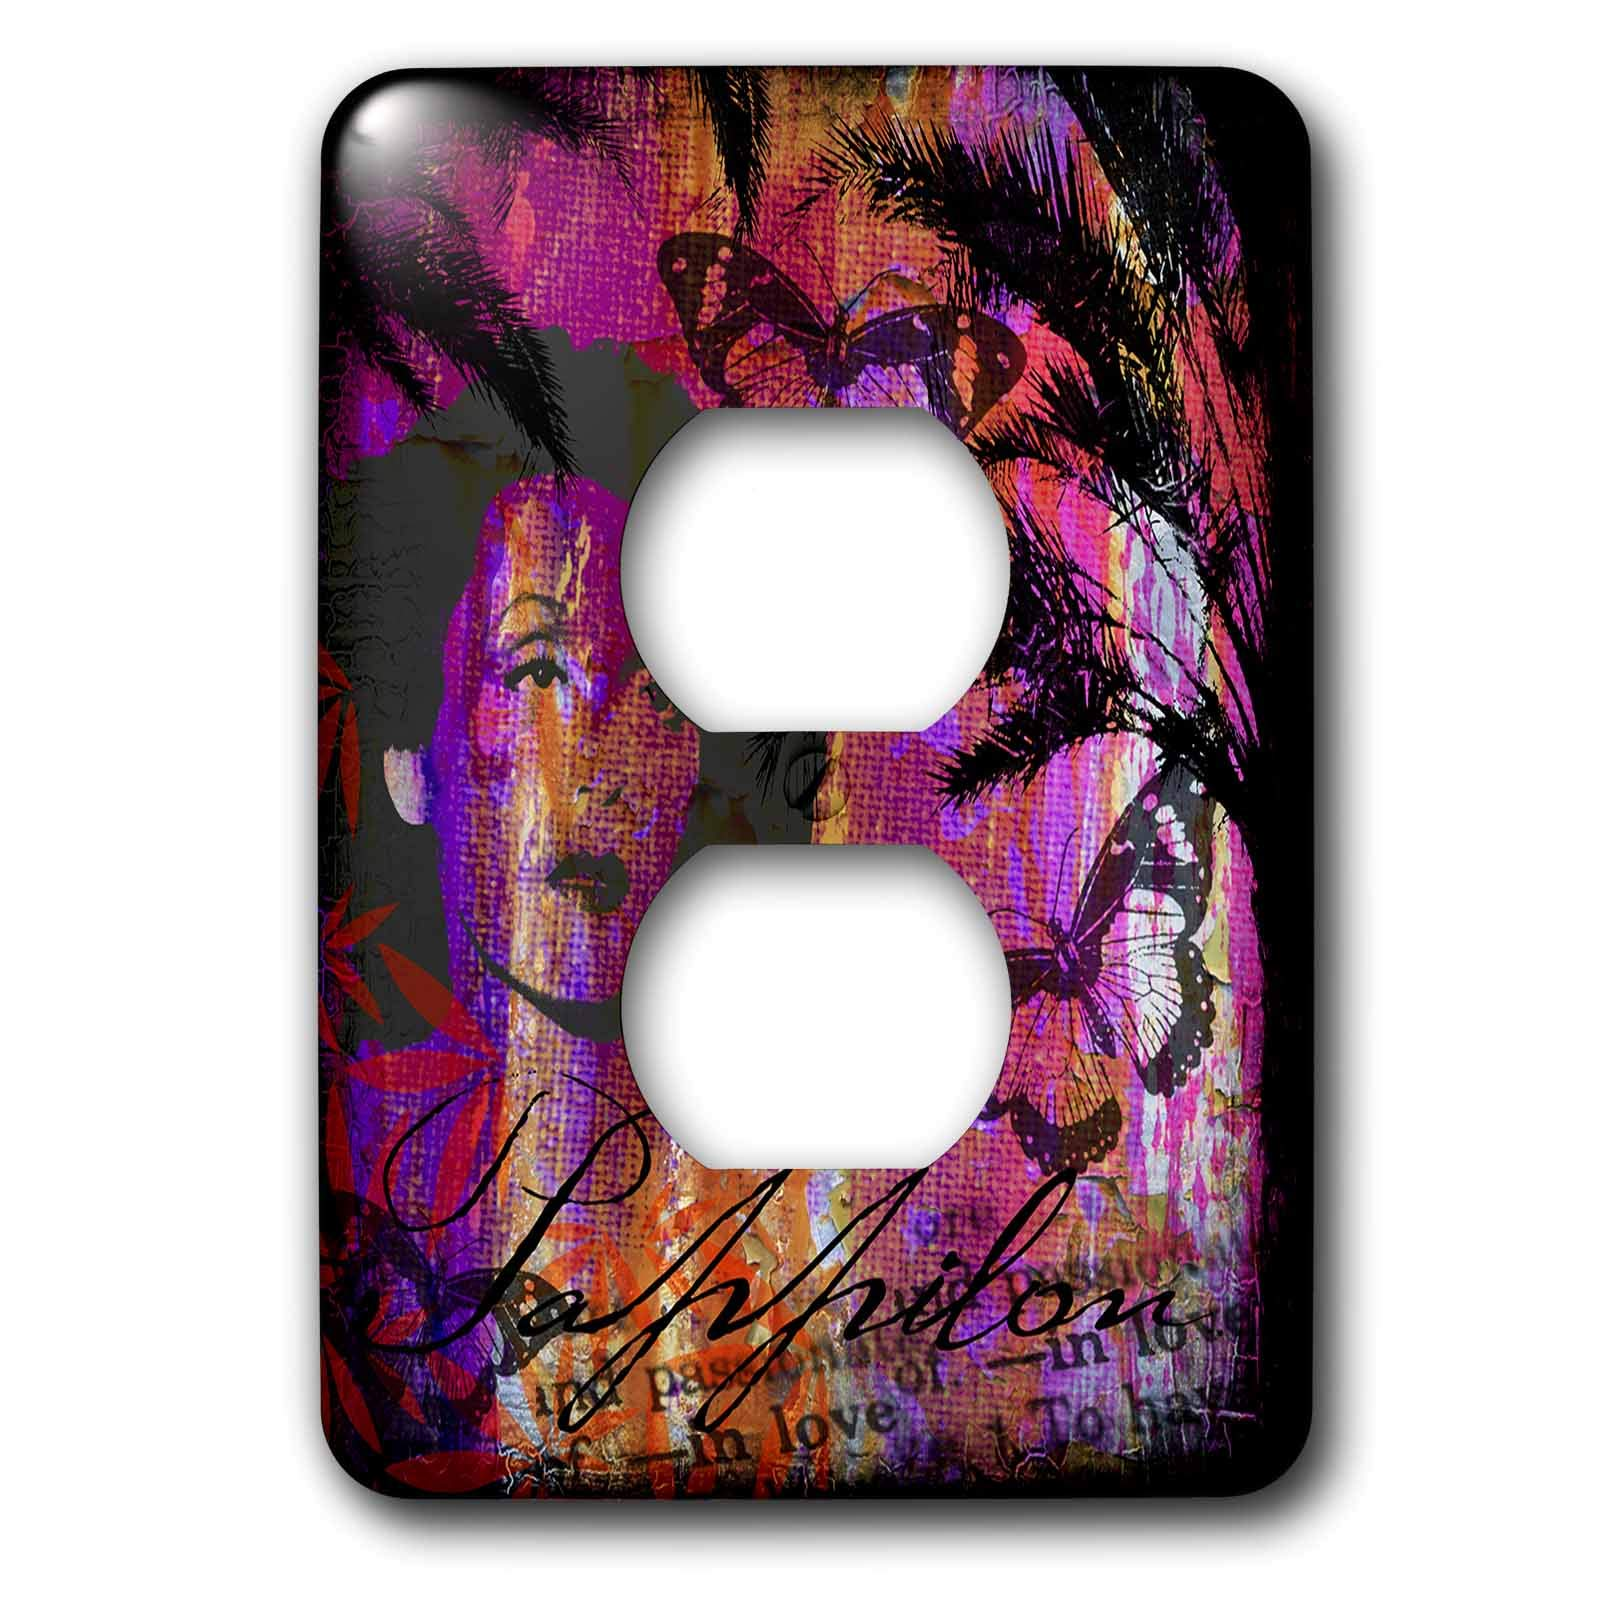 3dRose Andrea Haase Art Illustration - Nostalgic Women With Butterflies Mixed Media Art - Light Switch Covers - 2 plug outlet cover (lsp_288982_6)